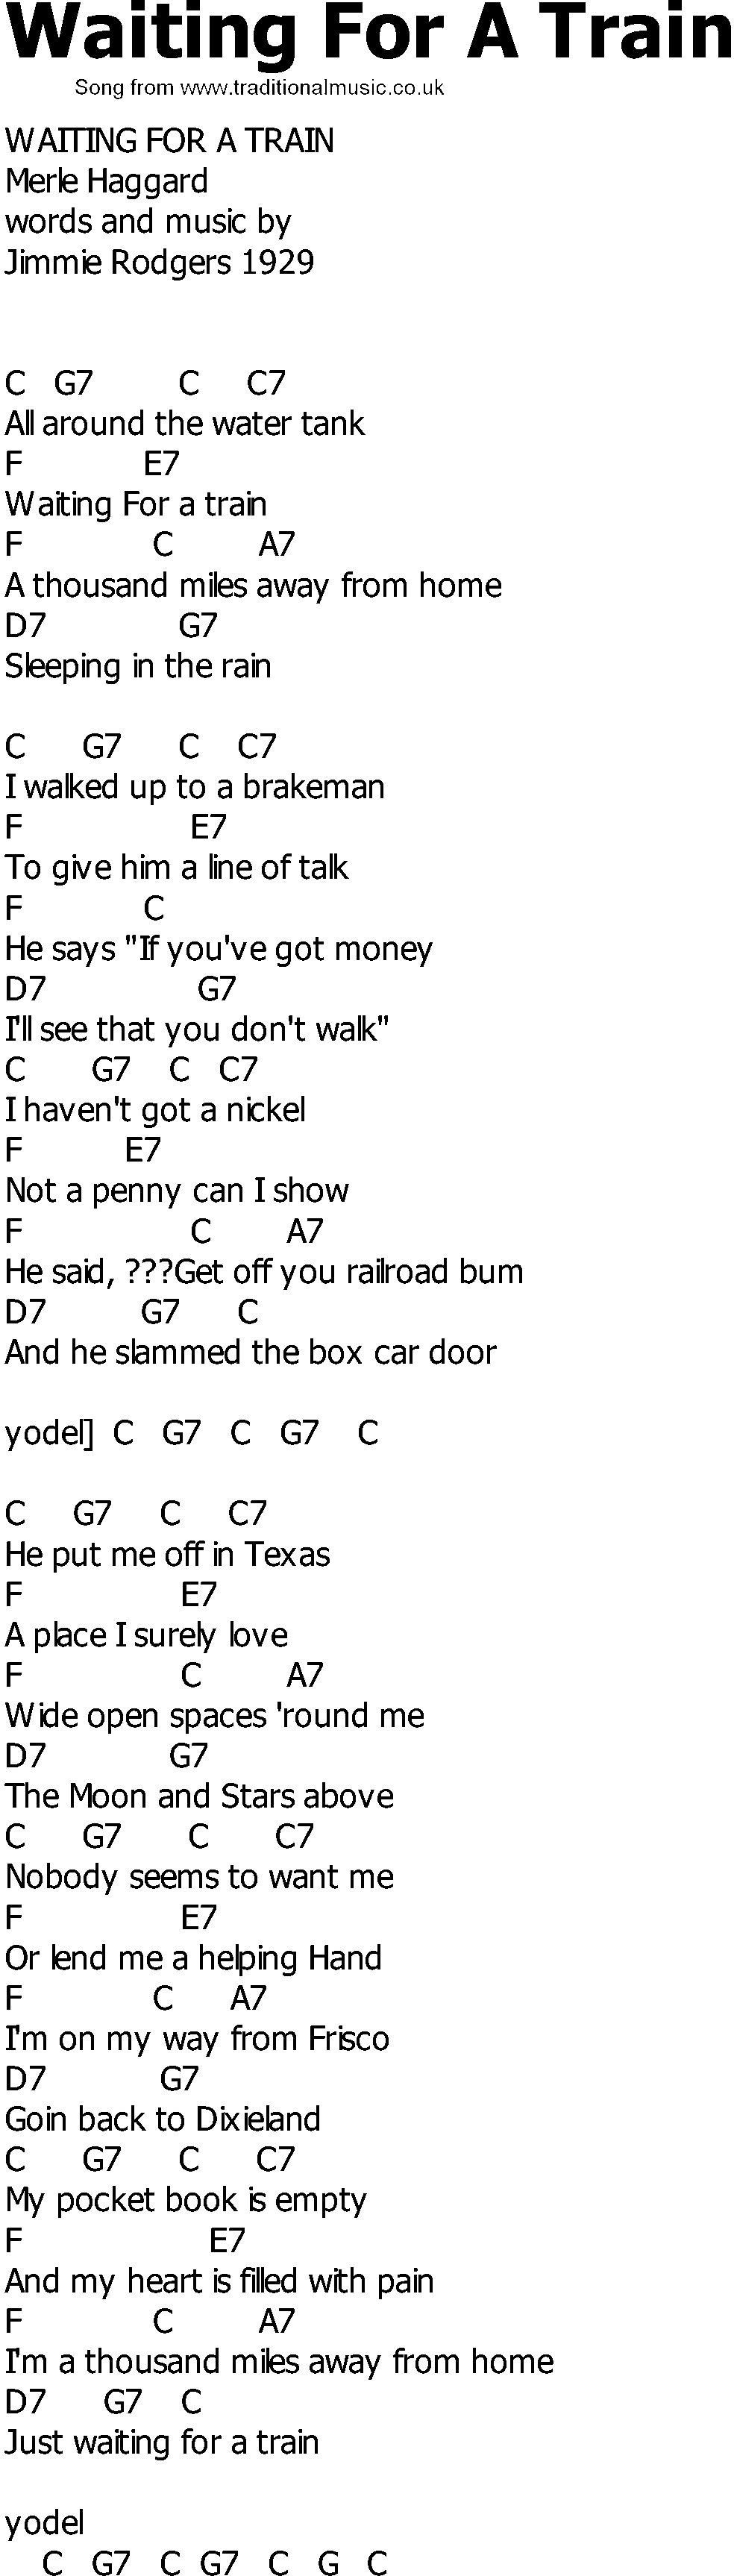 Old Country Song Lyrics With Chords Waiting For A Train